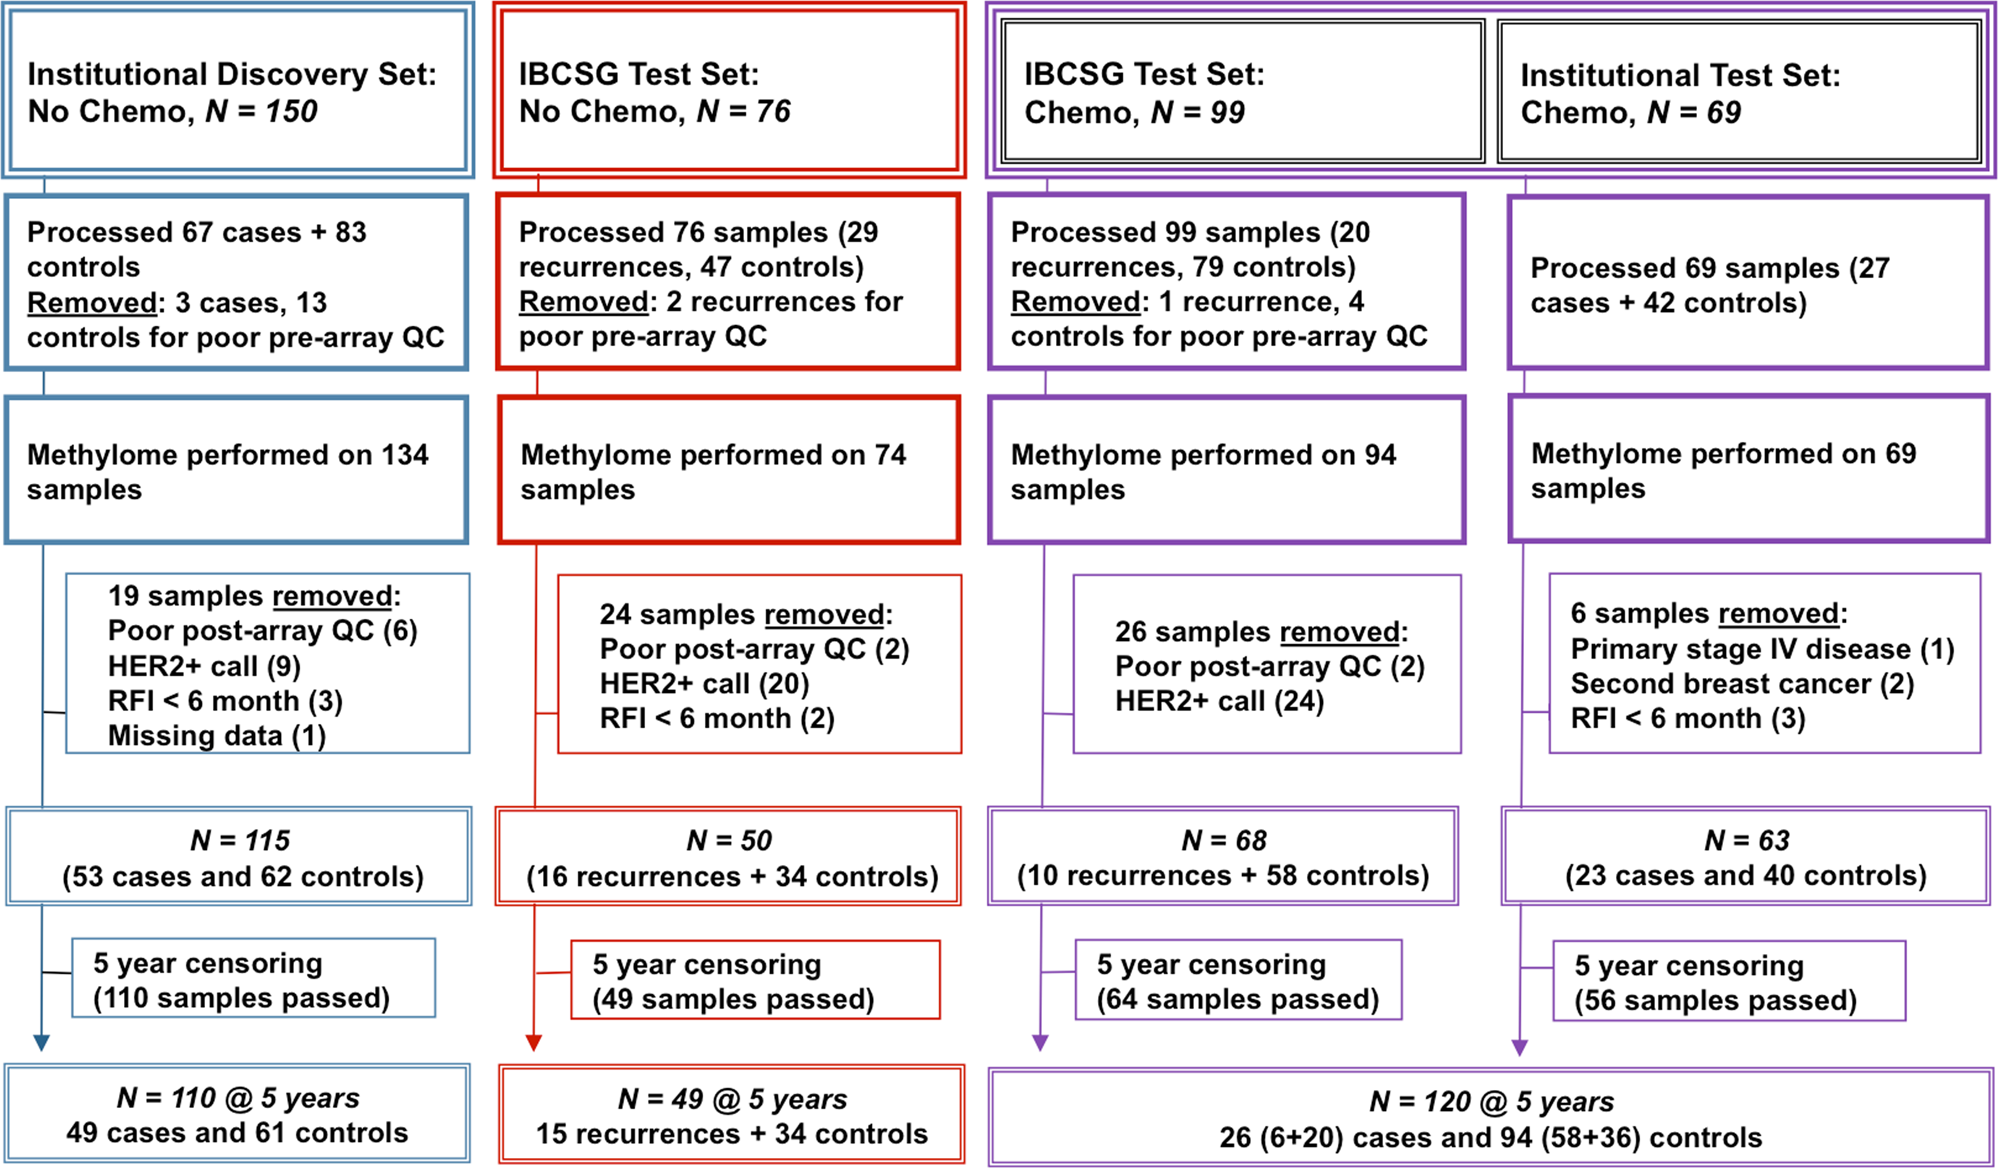 Dna Methylation Markers Predict Recurrence Free Interval In Triple Negative Breast Cancer Npj Breast Cancer